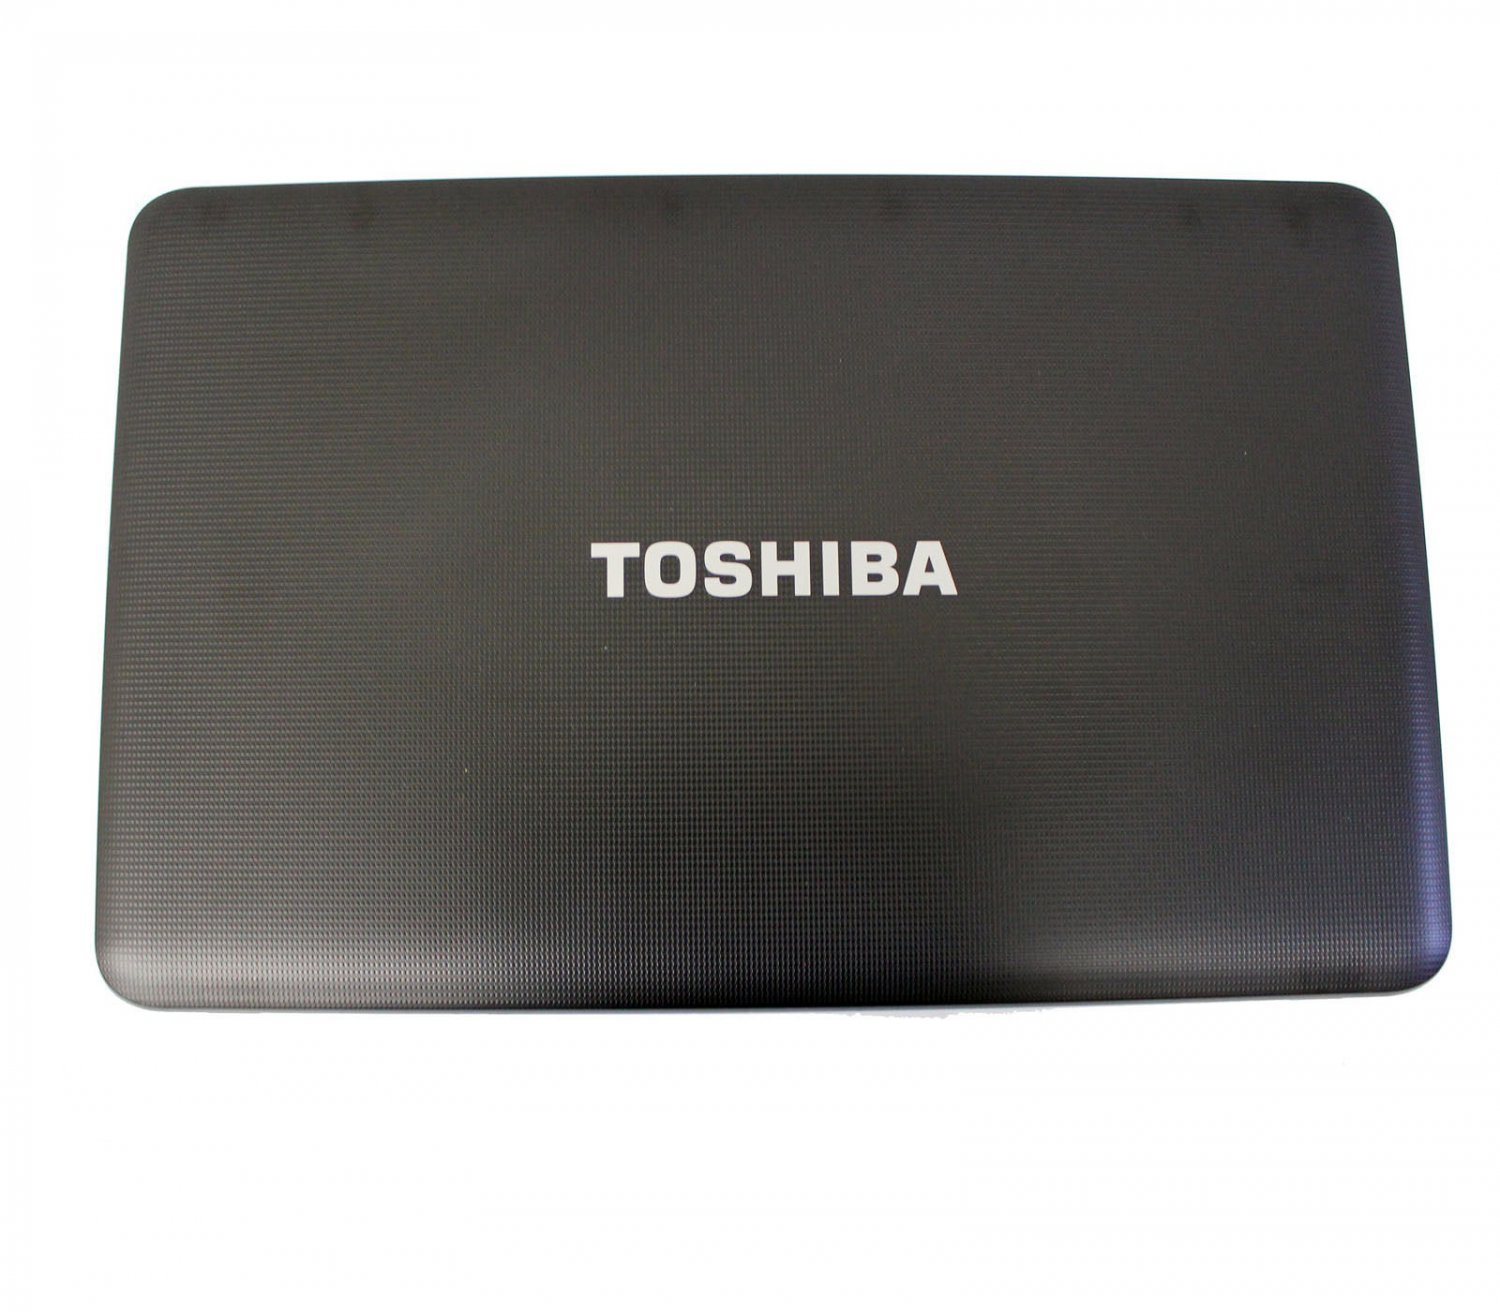 New Toshiba Satellite C855 C855D LCD Back Cover 15.6Inch Lid V000270490